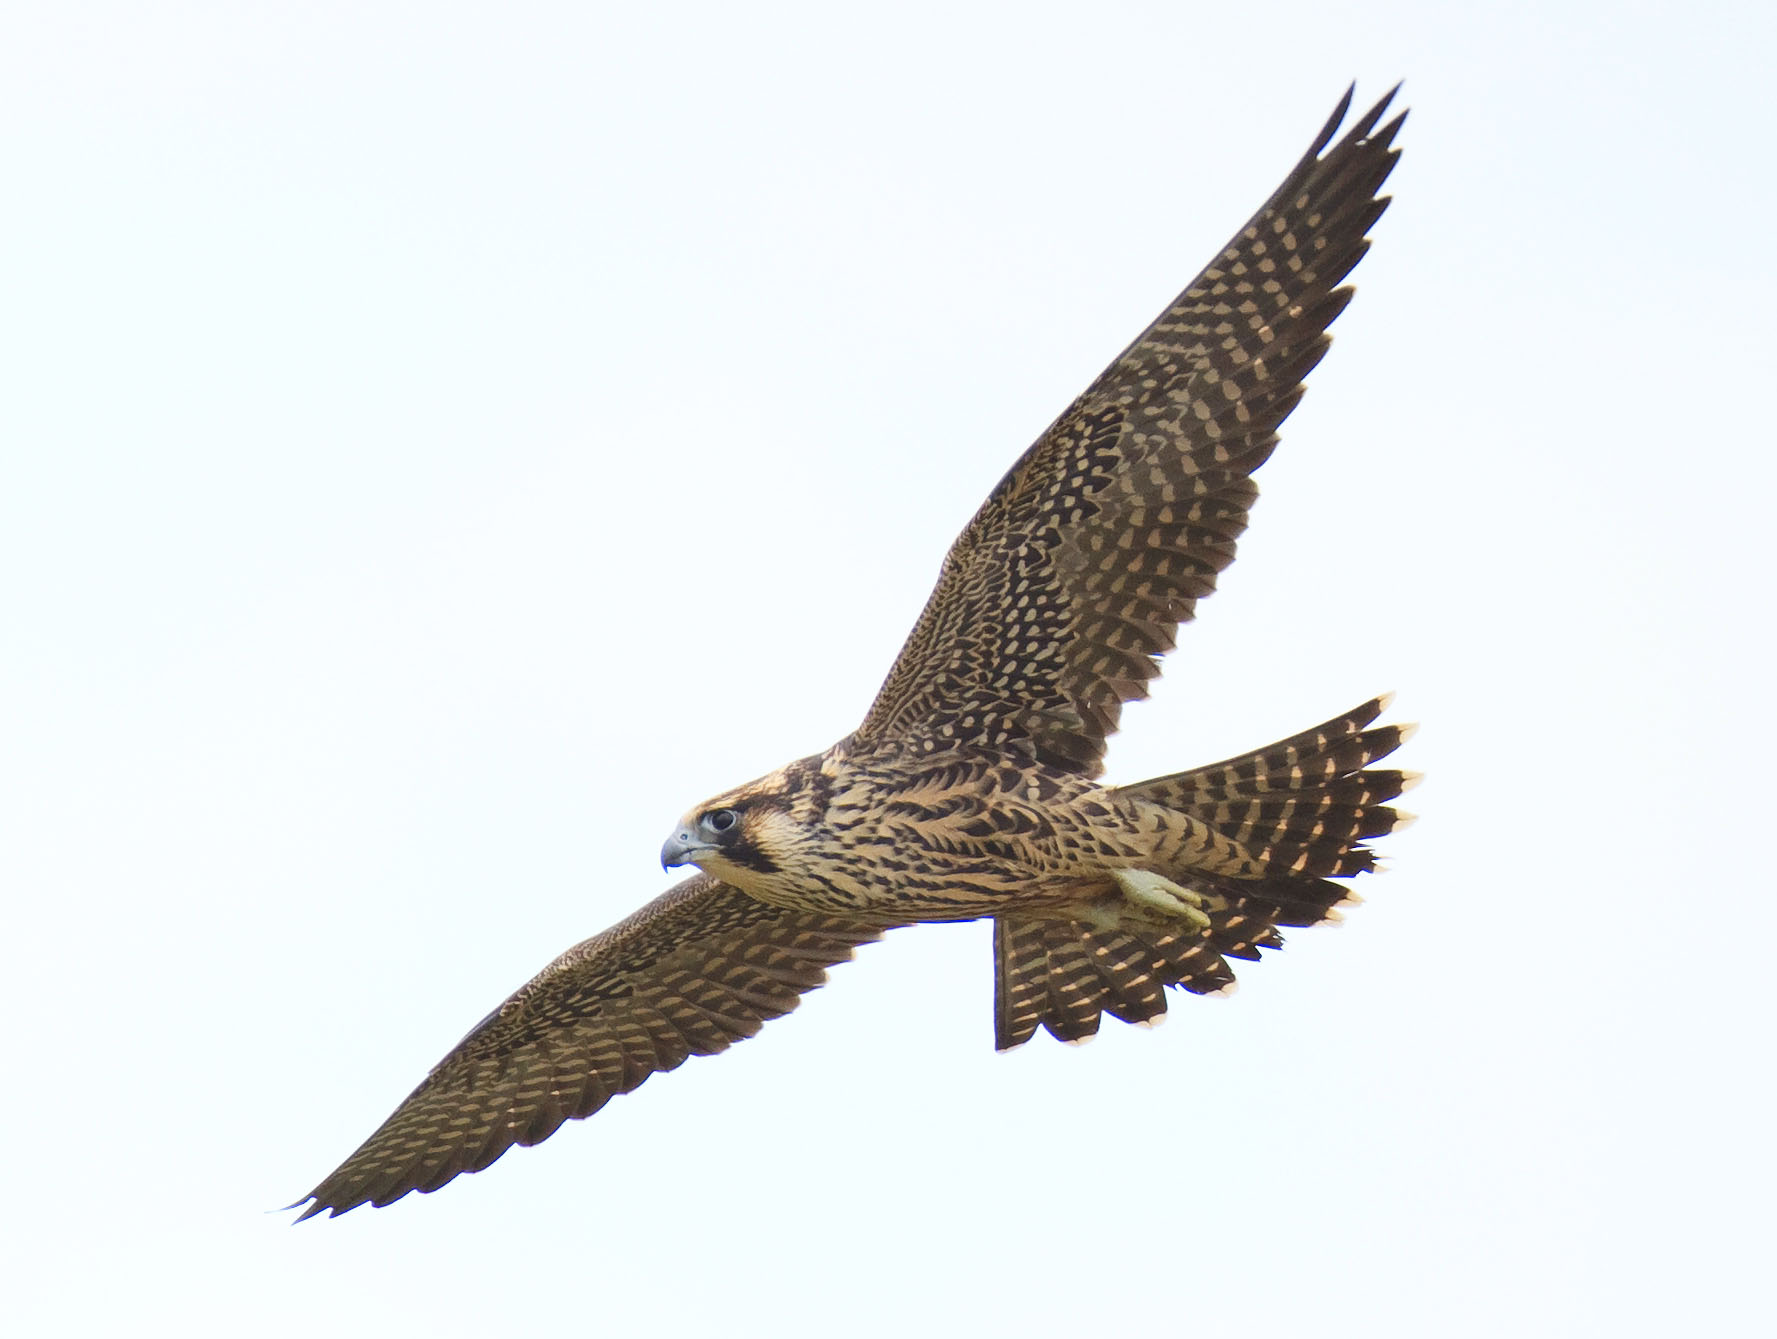 Peregrine Falcon Update October 20